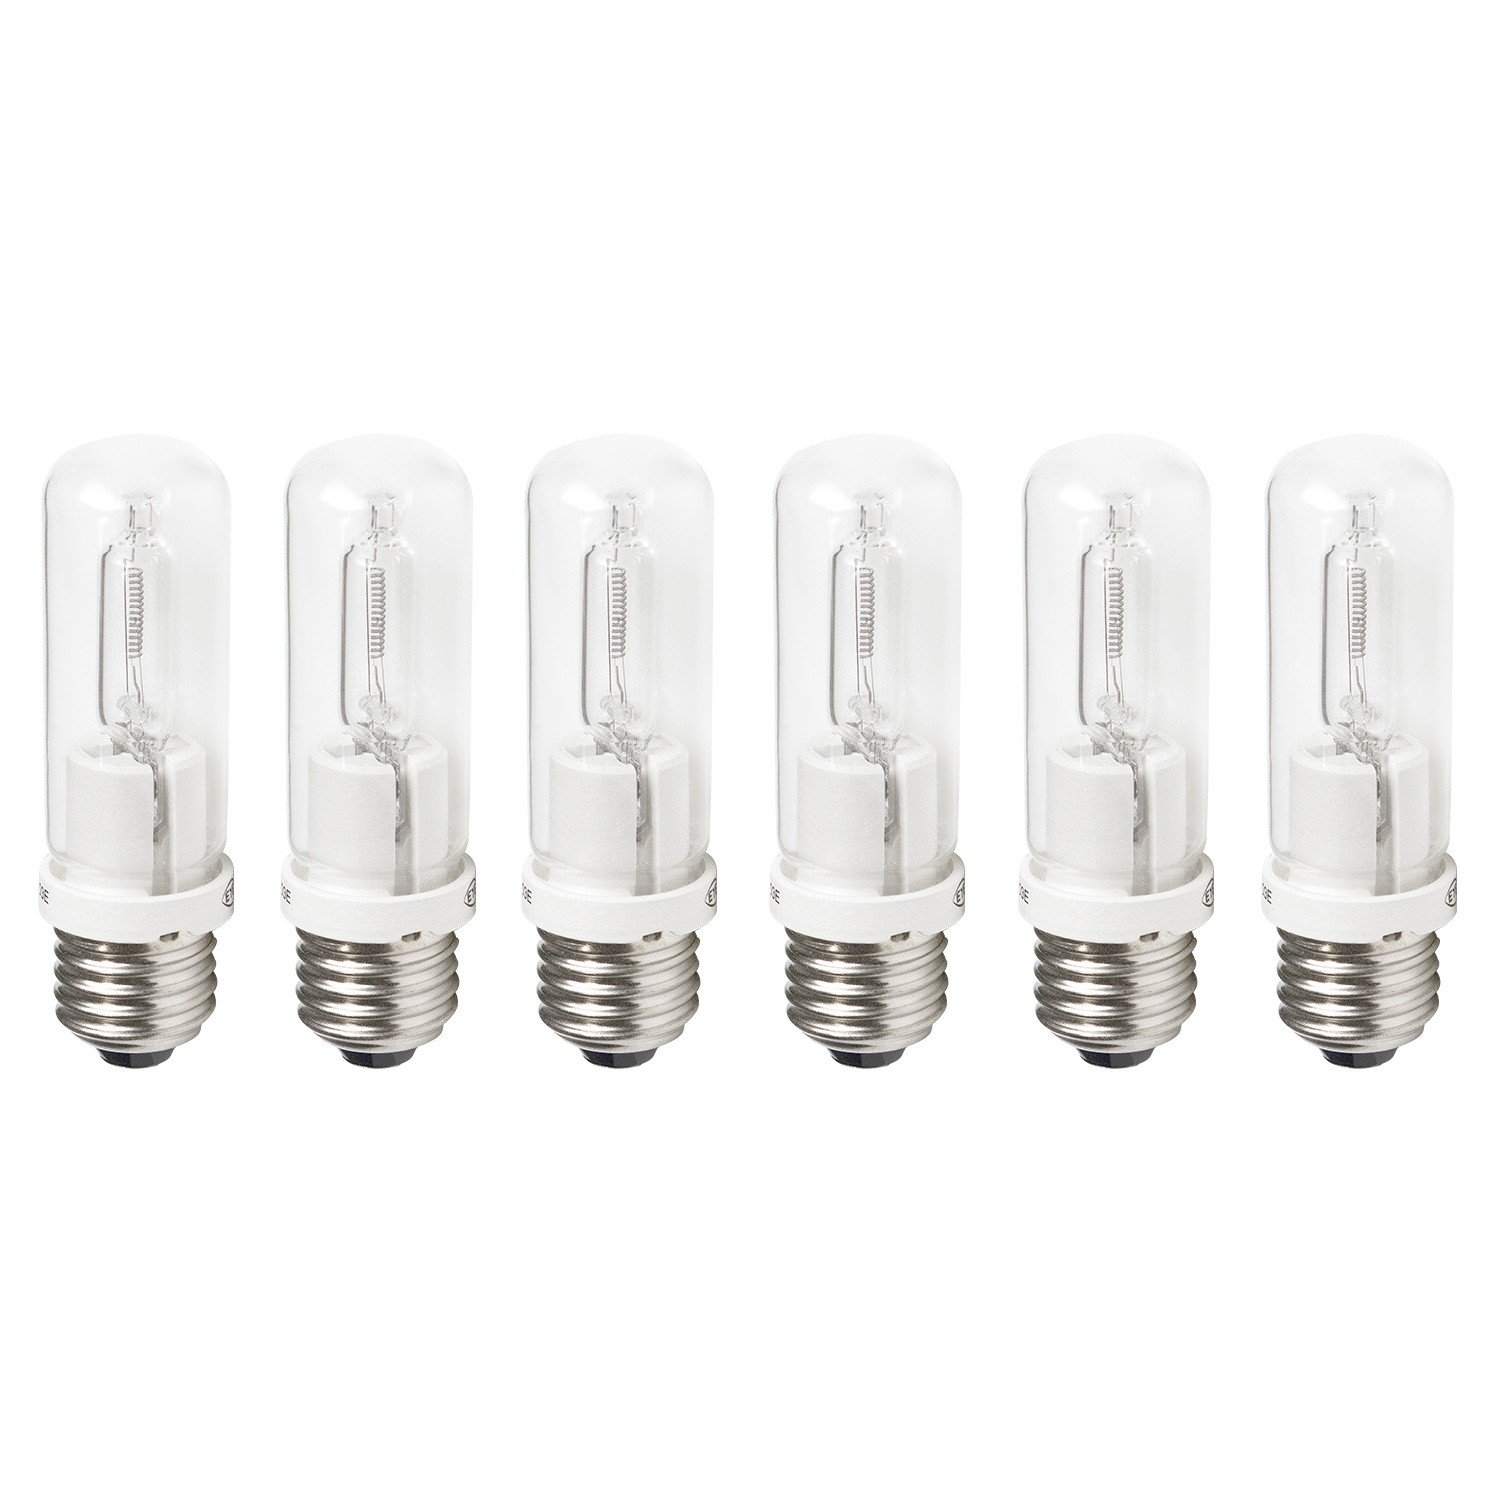 150-watt Tungsten Halogen Lamps 6-pack for Spiderlite & uLite